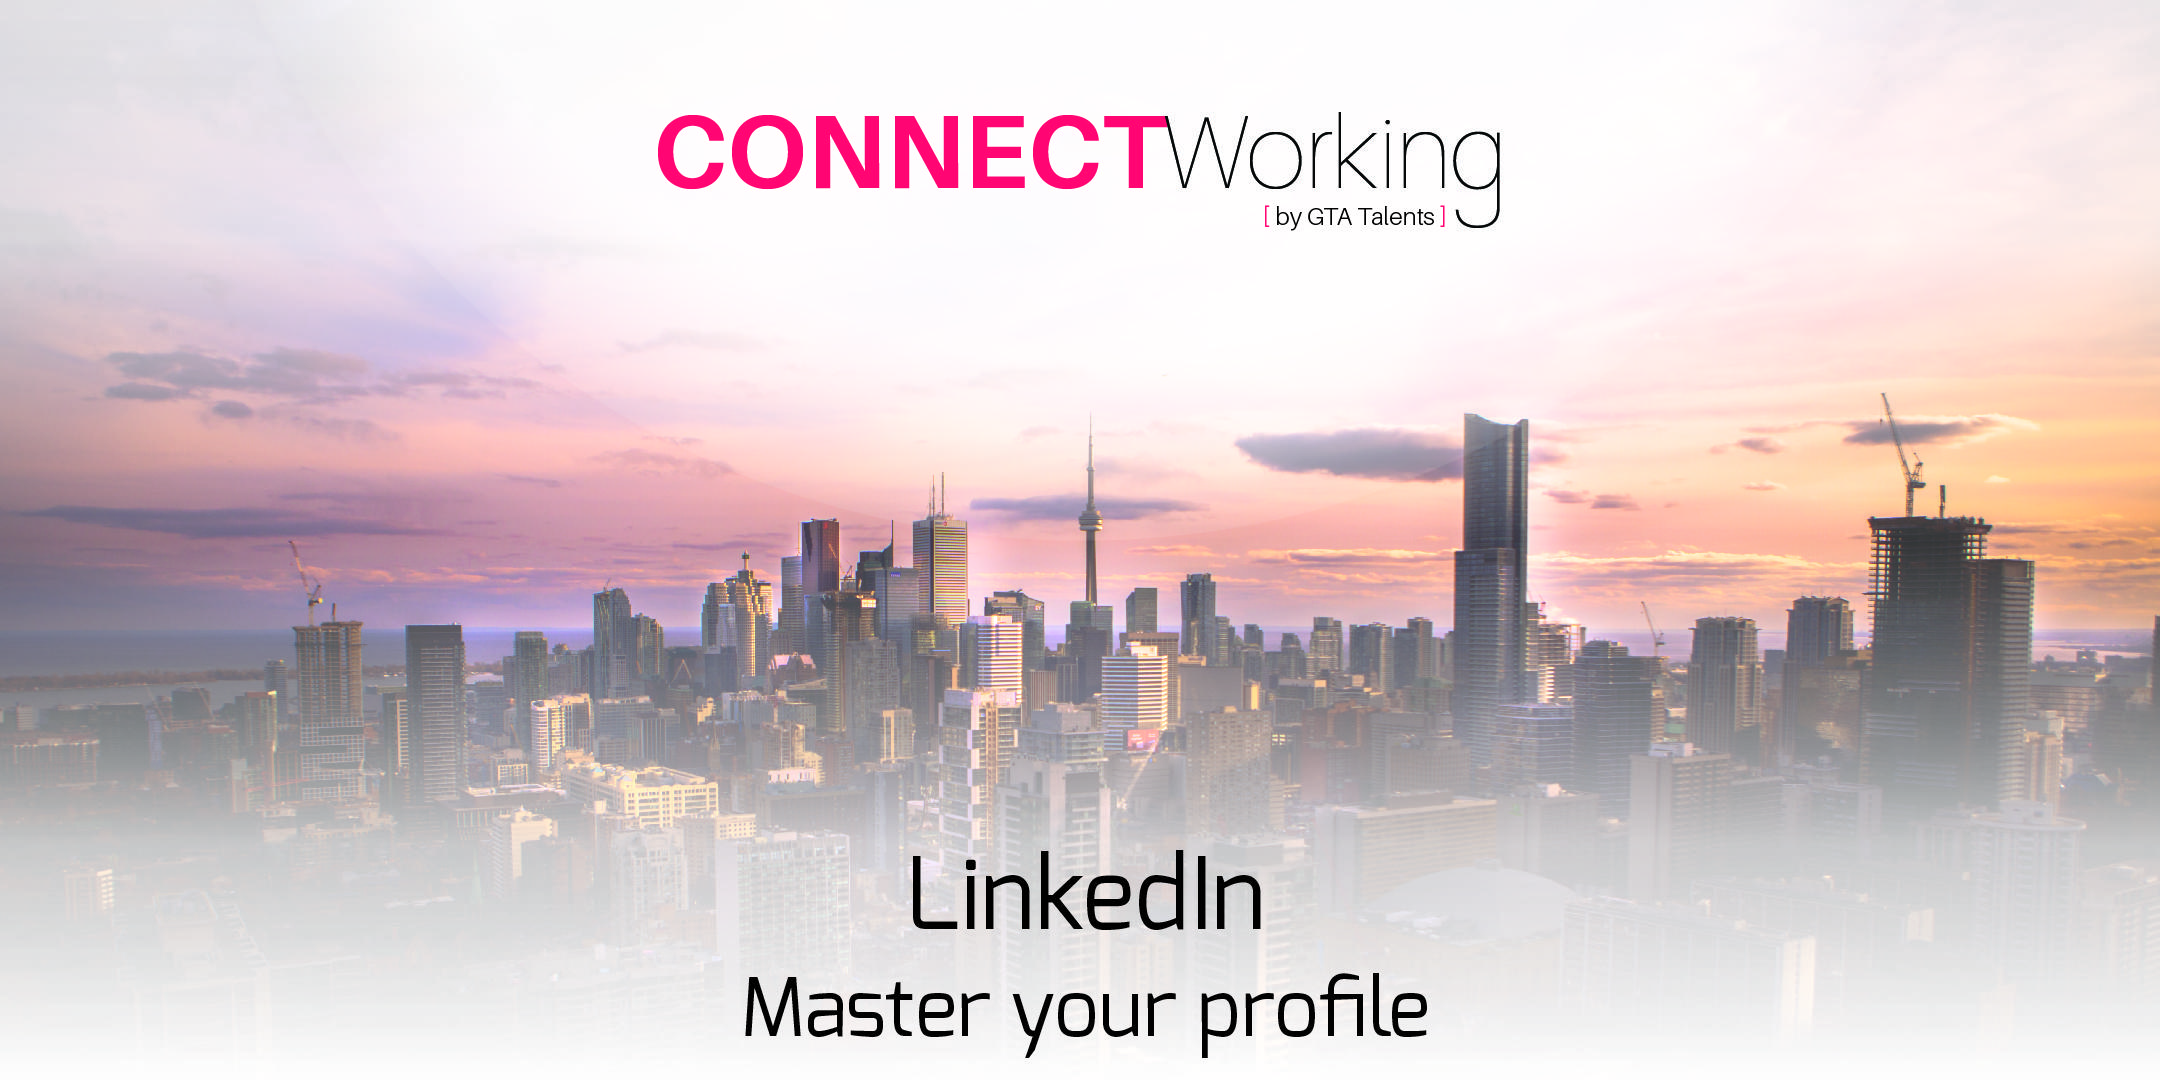 CONNECTWorking April 7th, 2020 - Linkedin: Master your profile!